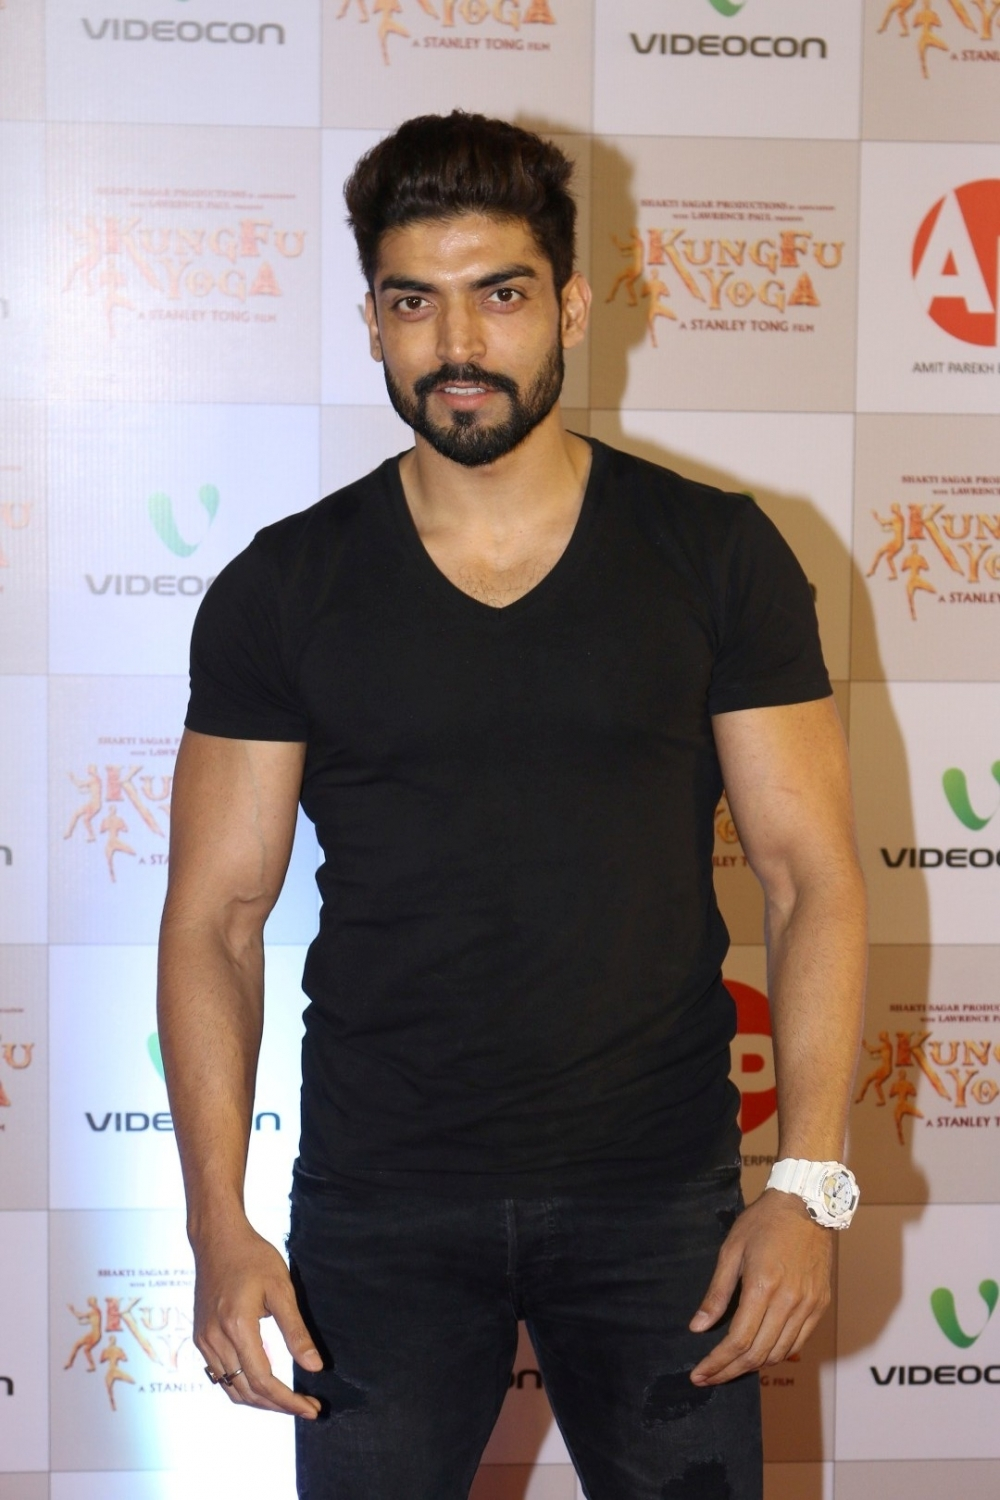 Mumbai: Actor Gurmeet Choudhary during the screening of film Kung Fu Yoga in Mumbai on Feb 2, 2017. (Photo: IANS)